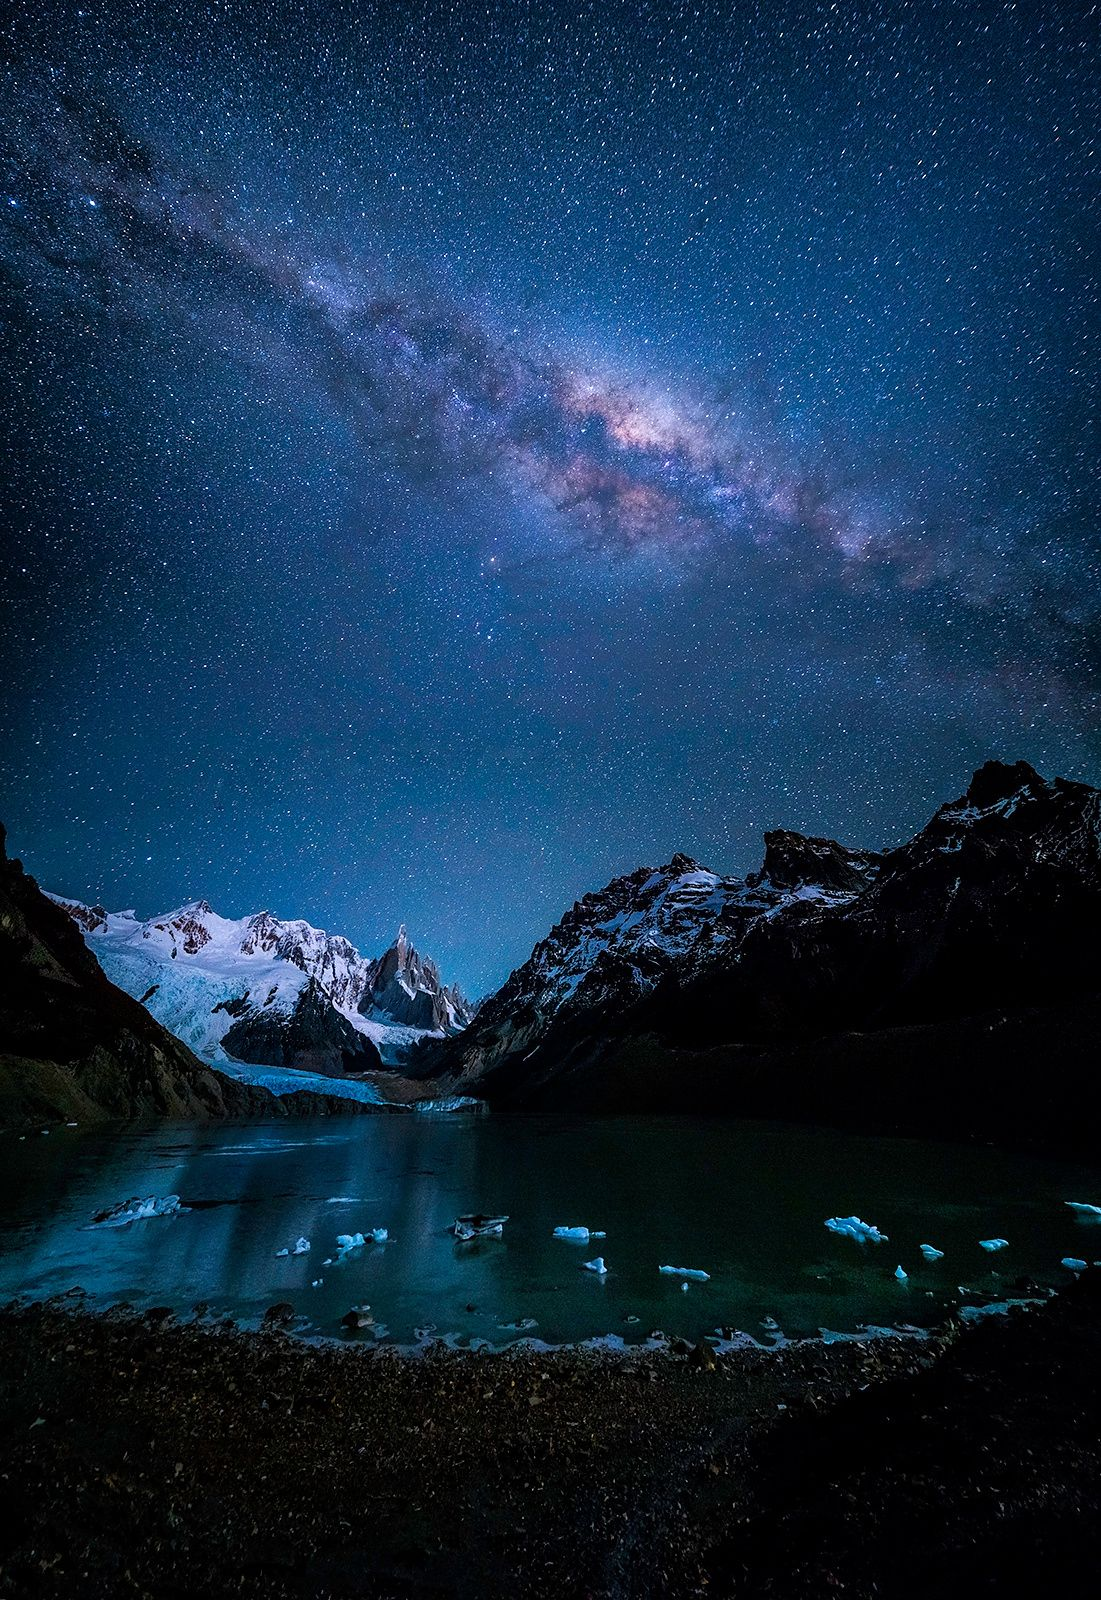 Laguna Torre under the Night Sky by Jonathan Zhang on 500px